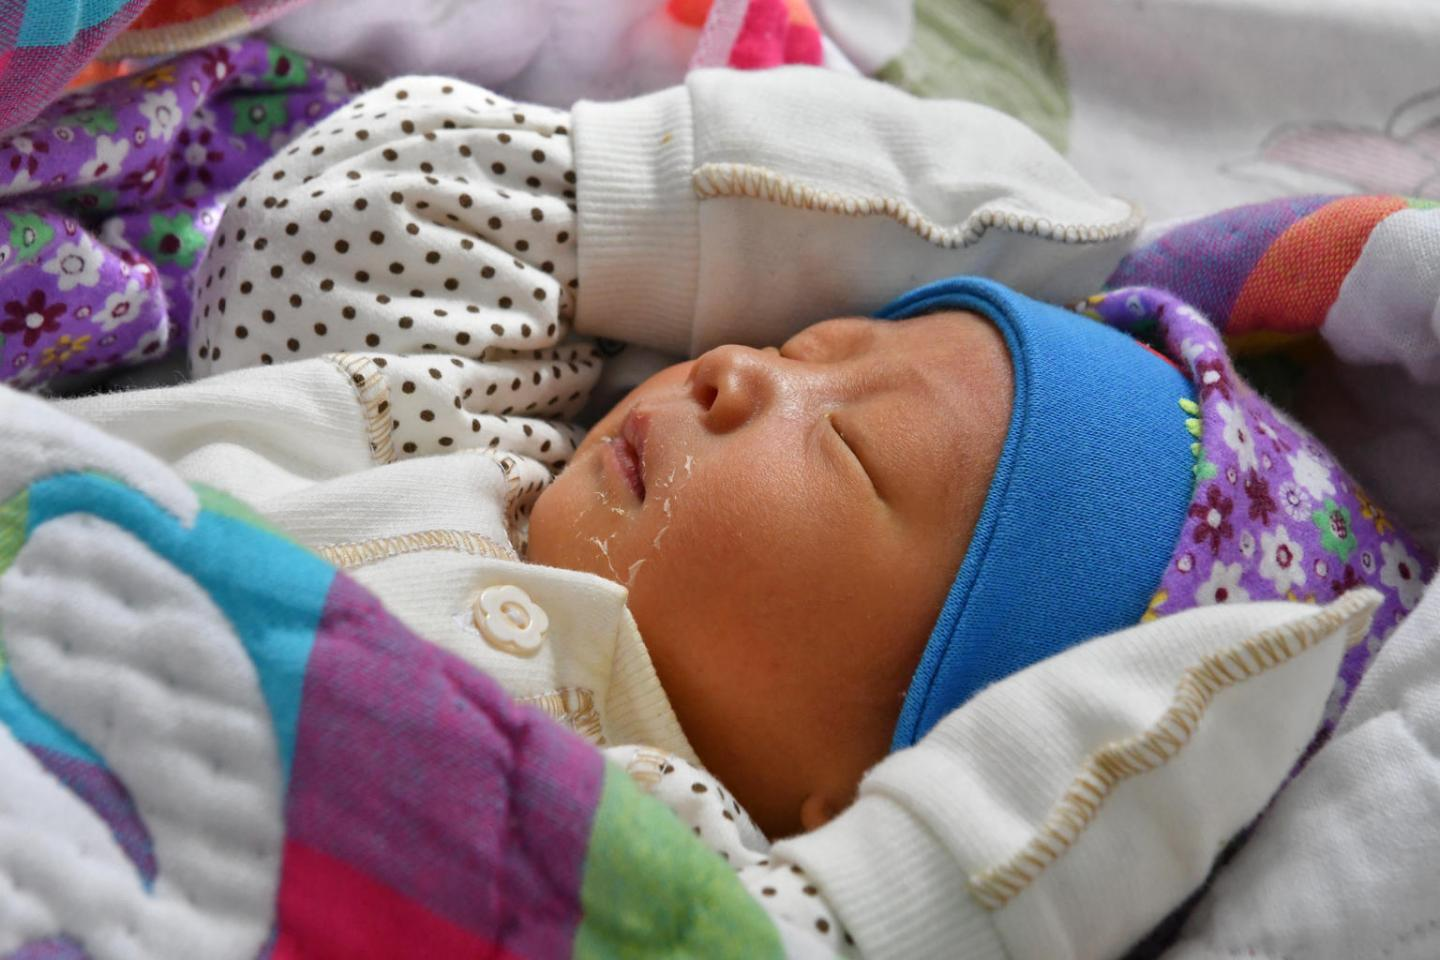 A newborn baby in a hospital in Kyrgyzstan that was entirely rehabilitated by UNICEF.